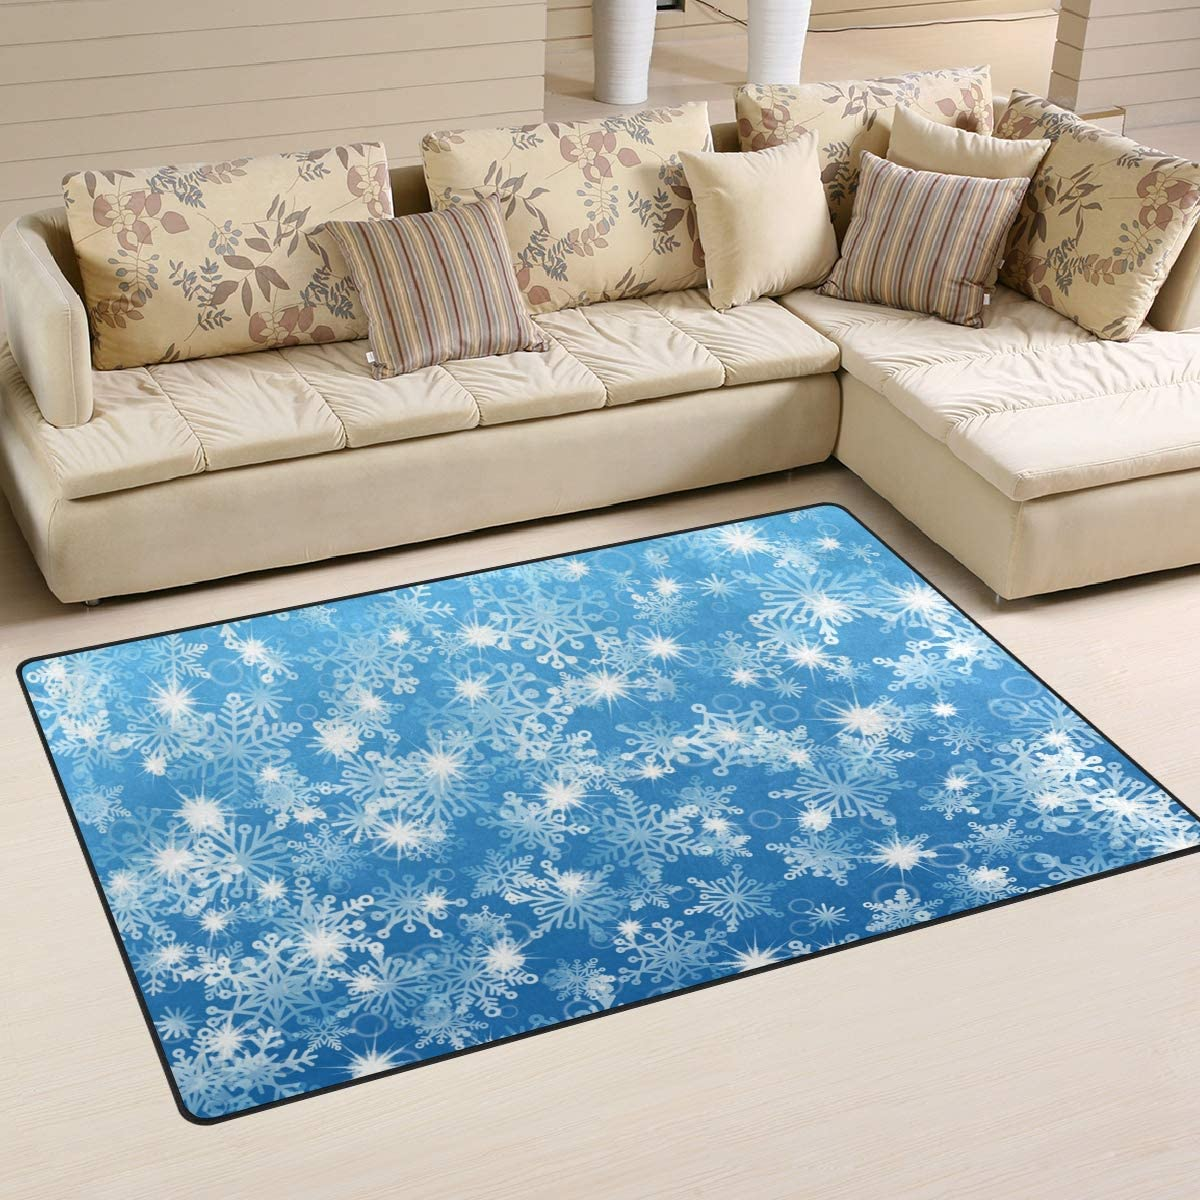 Zzaeo Christmas Winter Blue White Snowflakes Area Rug Polyester Soft Carpet Non Skid Floor Mat Rugs For Living Room Dorm Girls Bedroom Home Decor 60 X 39 Inch Home Kitchen